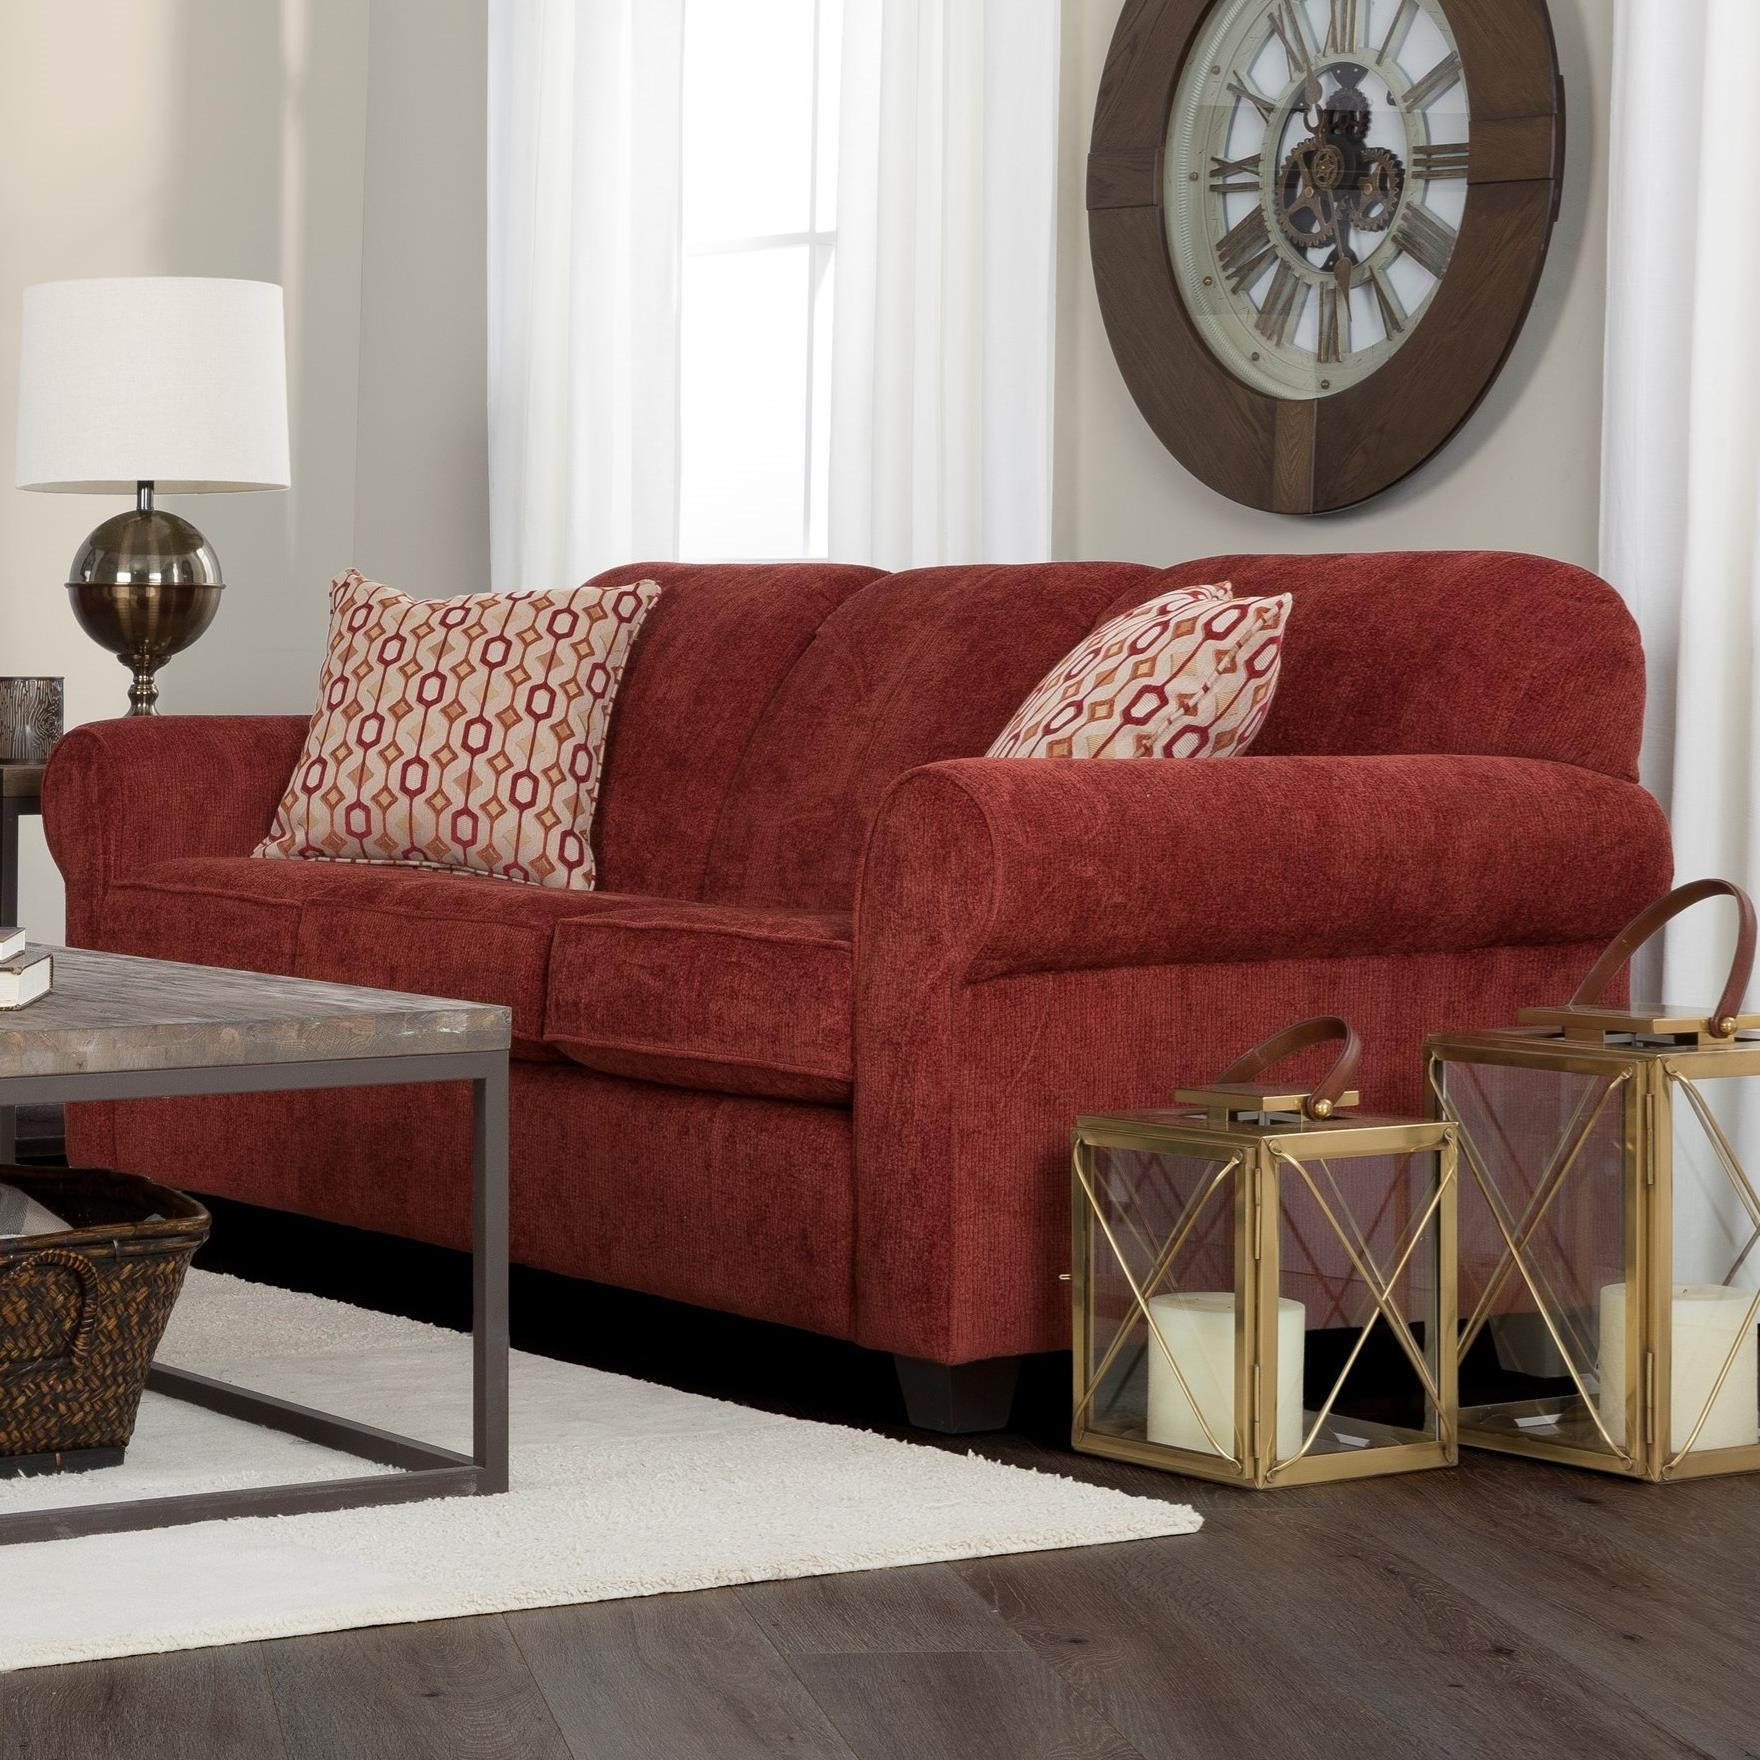 2455 Contemporary Sofa by Decor-Rest at Rooms for Less